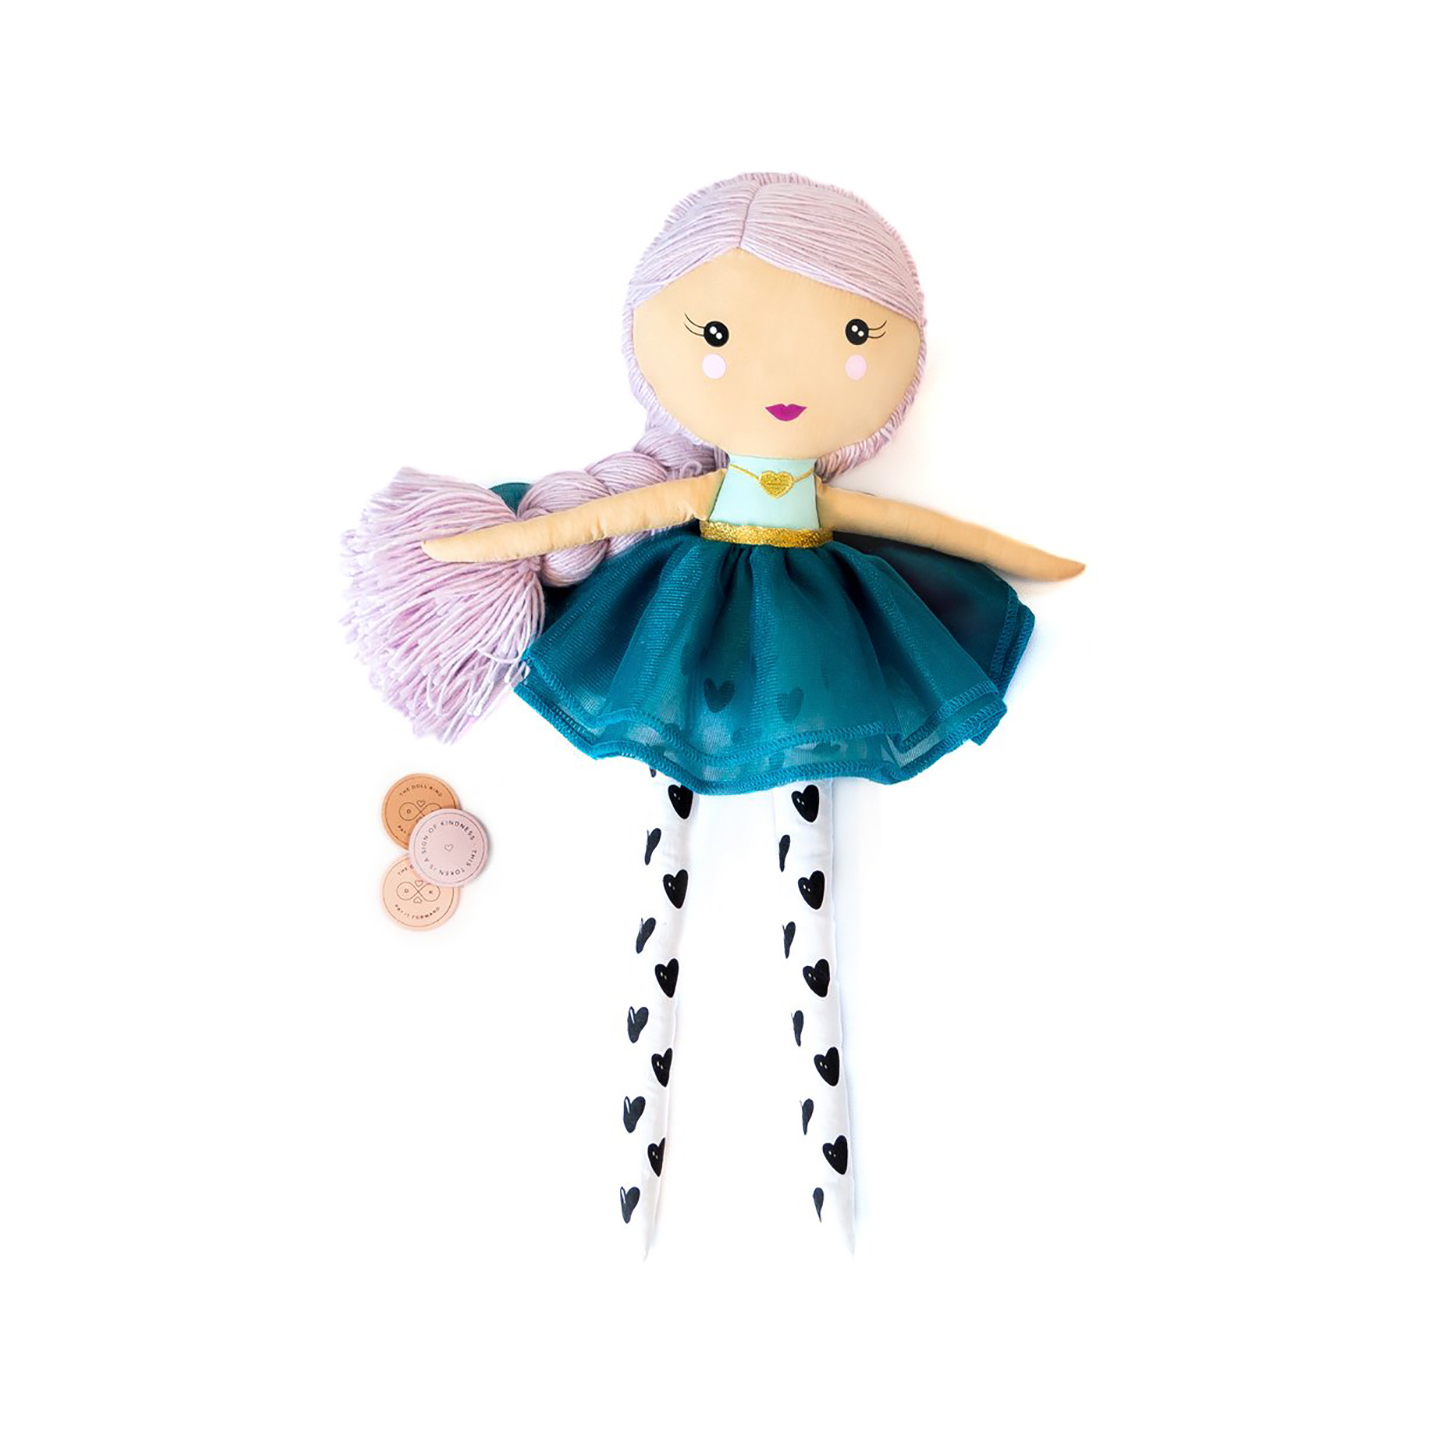 Cool gifts for kids - Kind Culture Co. The Fair Doll